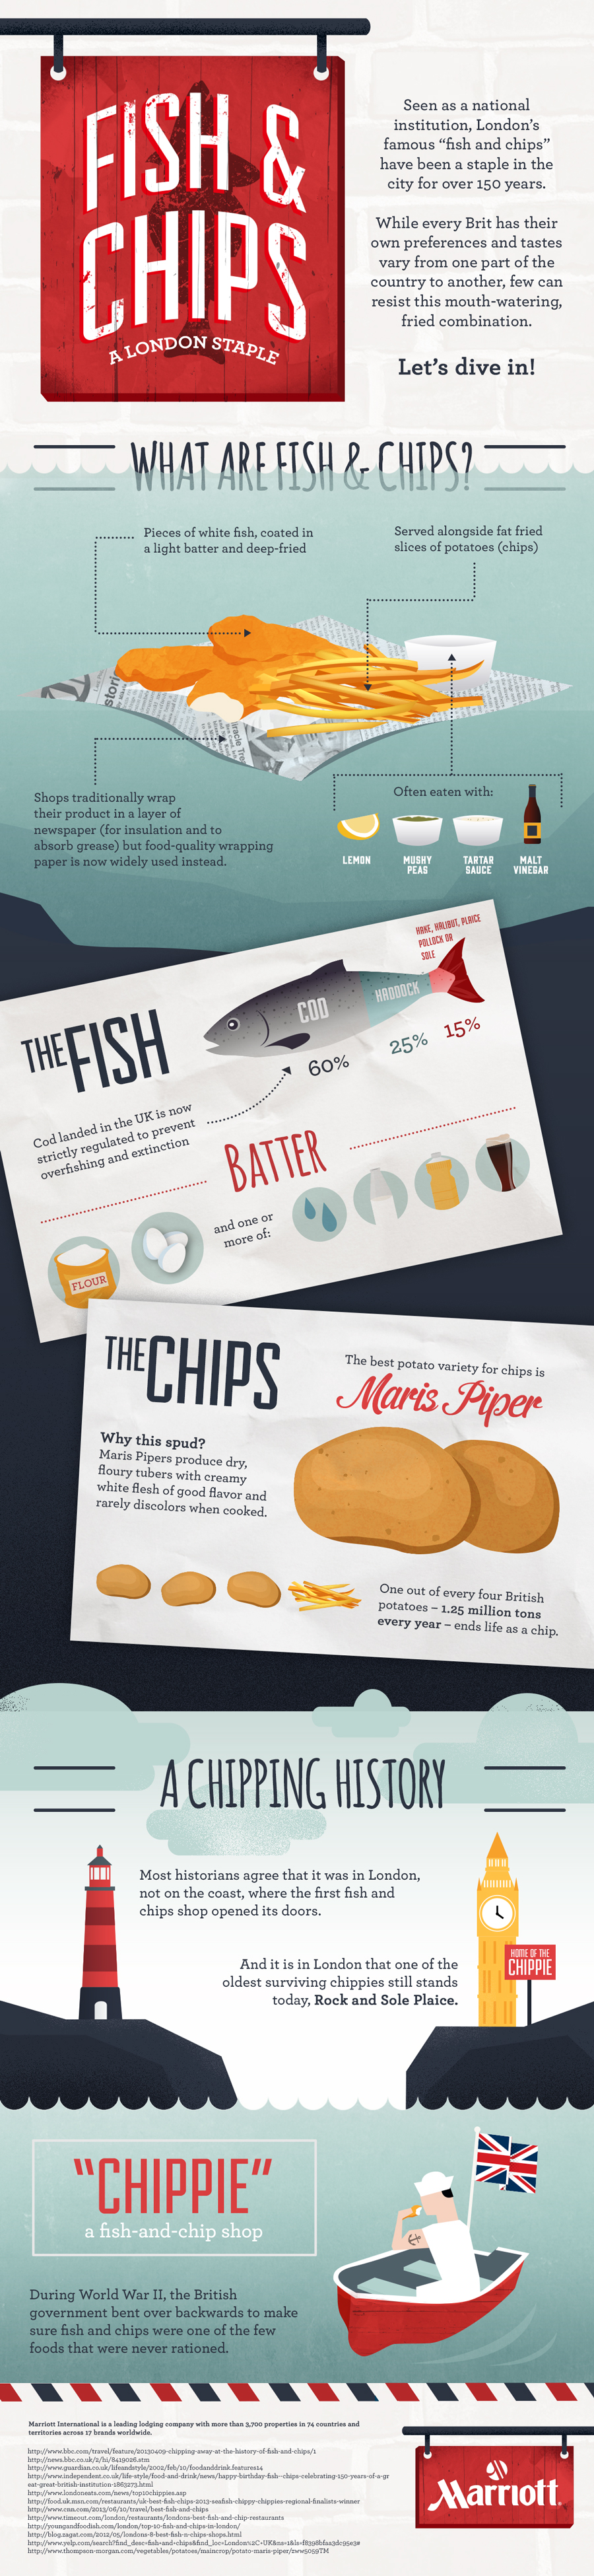 04 London-Fish_and_Chips-updated-final-infographic